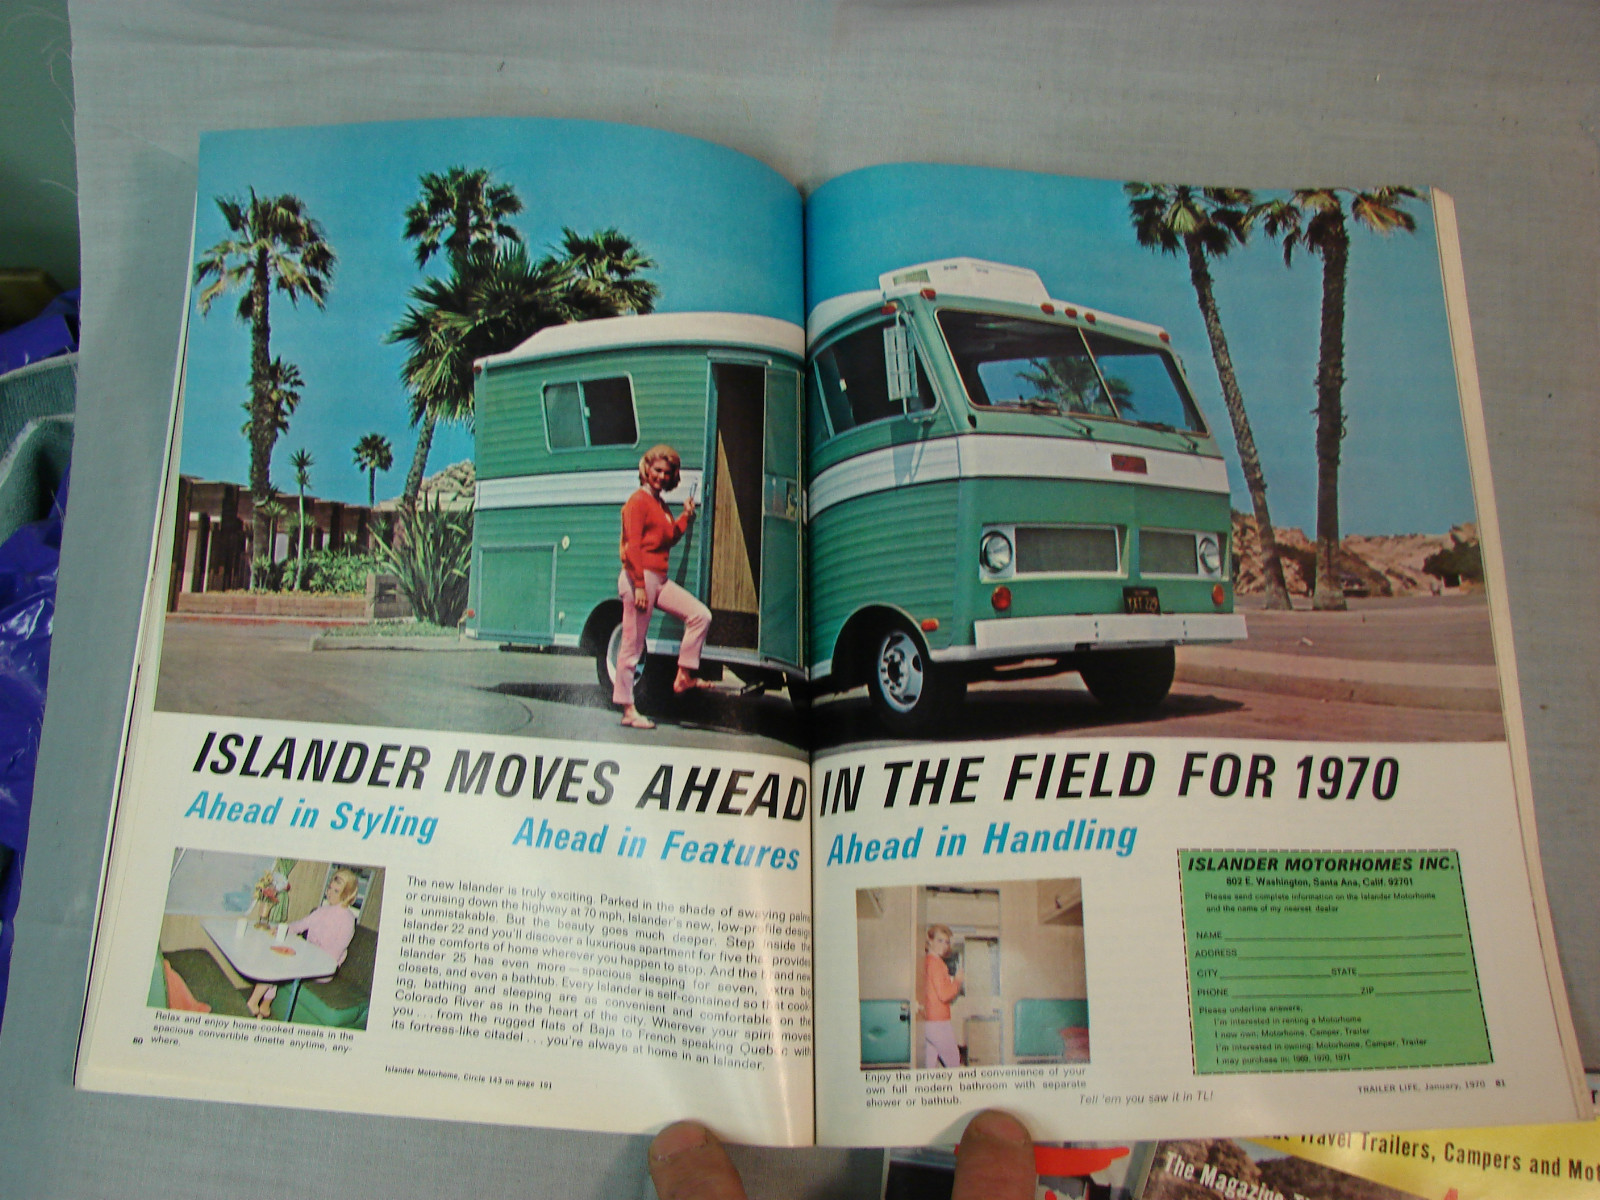 hight resolution of keep in mind this is the very early 1970s and motorhomes were everywhere and the love of the rv lifestyle was shared by alot of people even silently in lieu